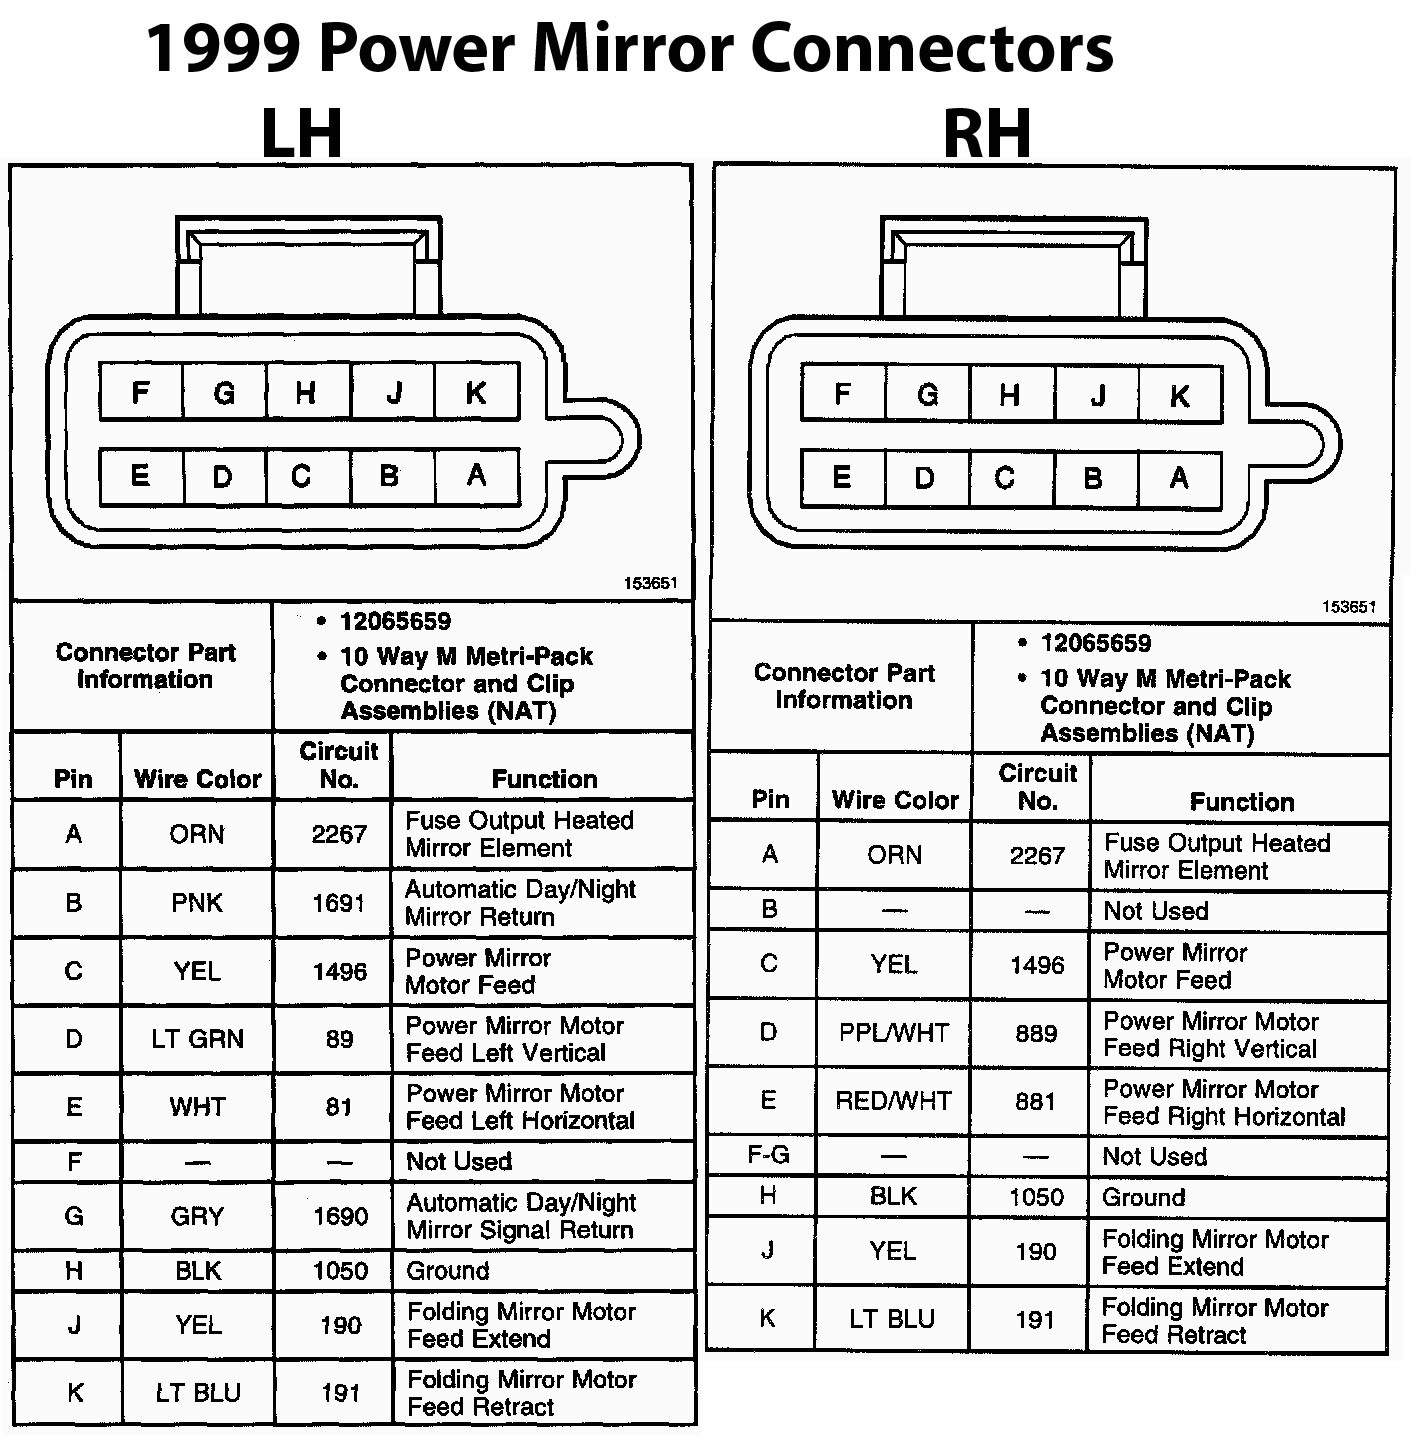 seat warmer wiring diagram impala 01 data wiring diagrams u2022 rh mikeadkinsguitar com